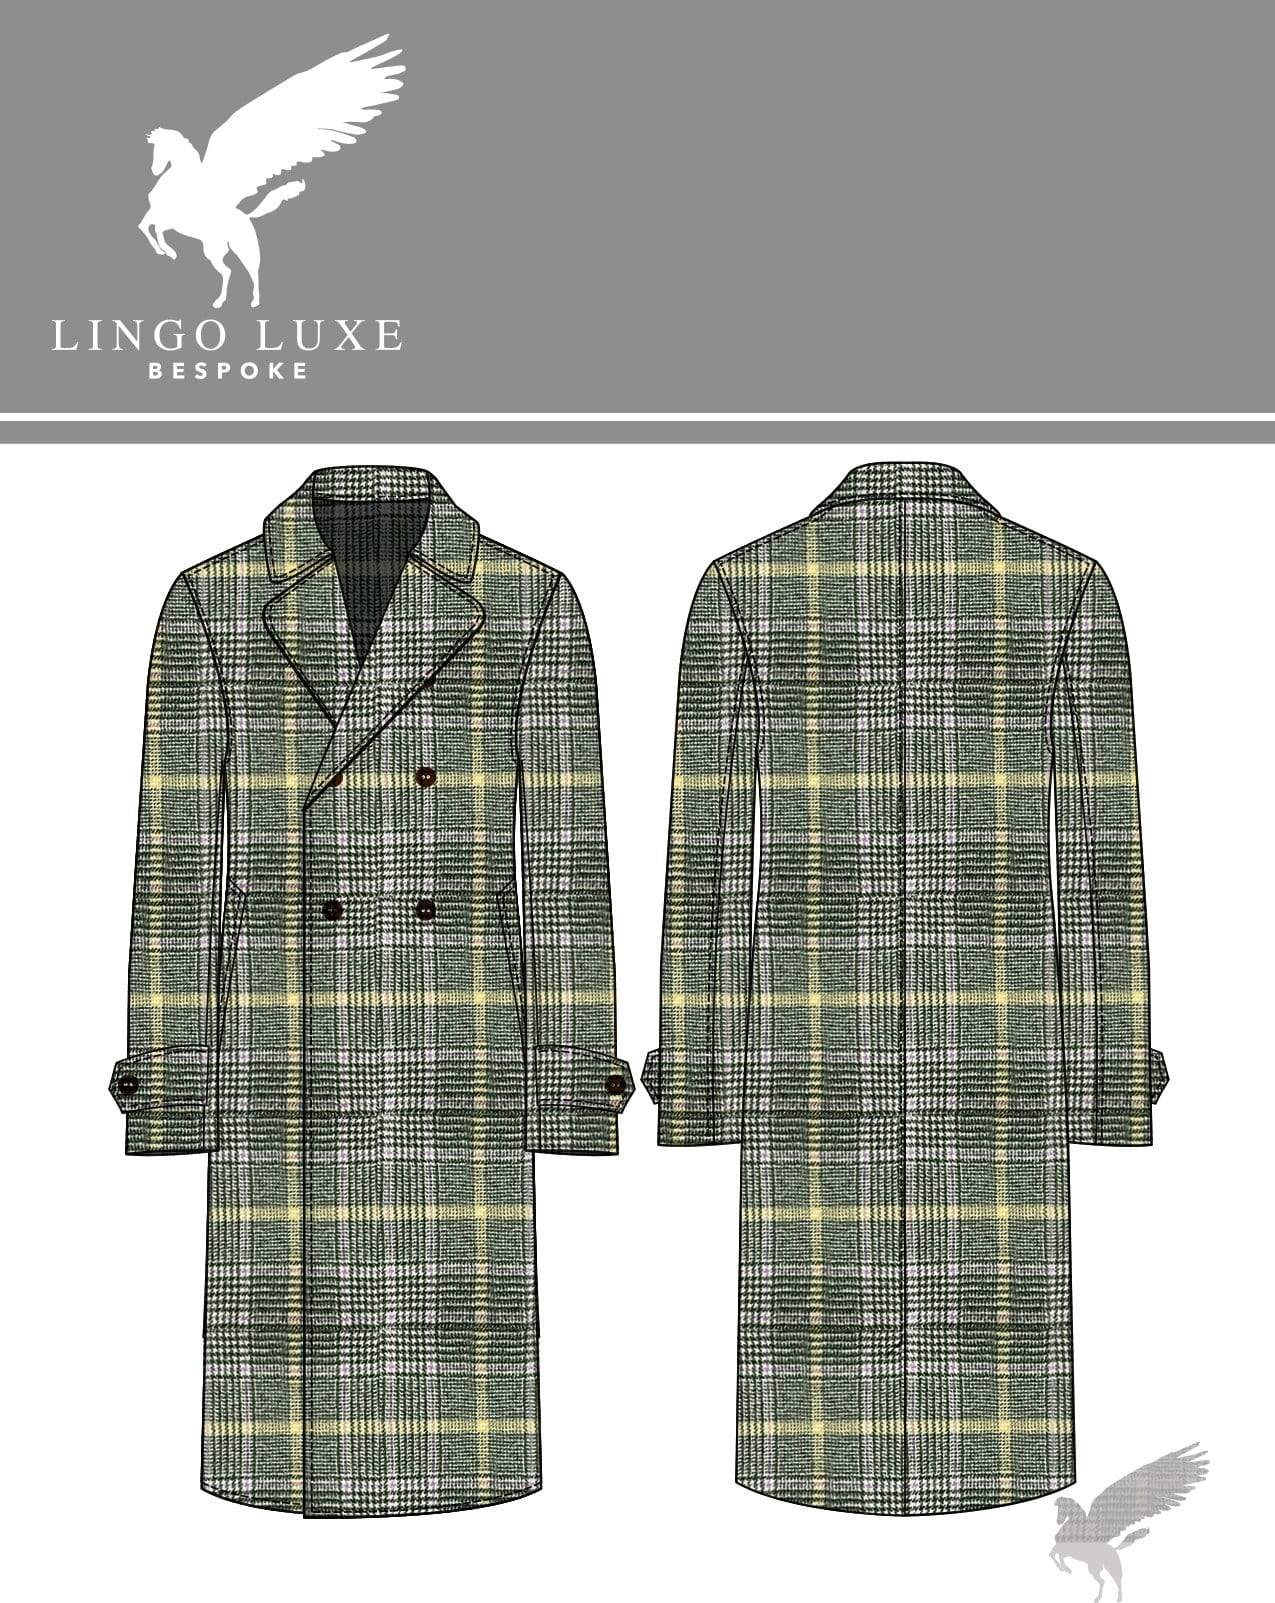 Outerwear | Lingo Luxe The Stately Overcoat | Lavender Sunshine-Lingo Luxe Bespoke